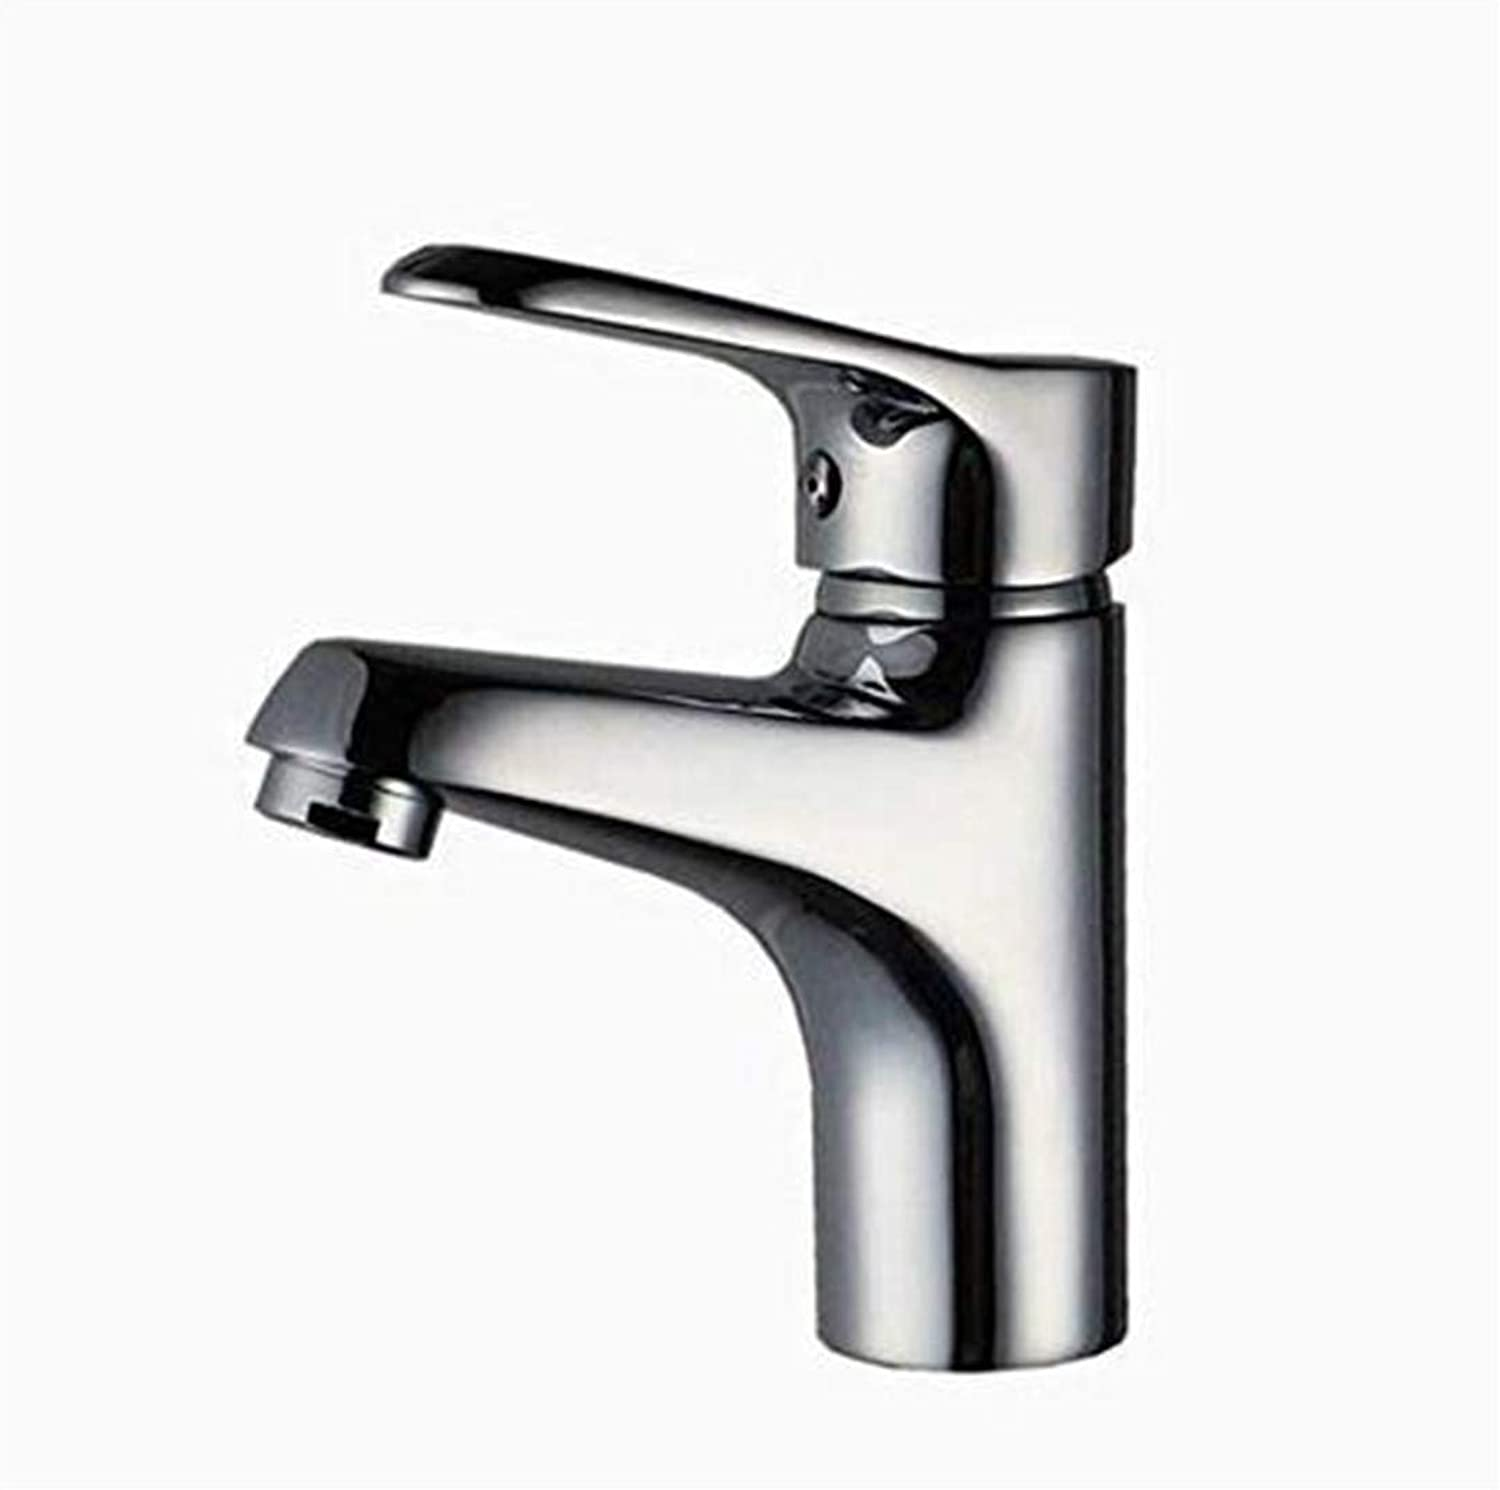 Kitchen Hot and Cold Water Brass Chrome Basin Faucet Copper Main Body High Standard Plating Hot and Cold Water Faucet Wash Basin Dedicated Taps